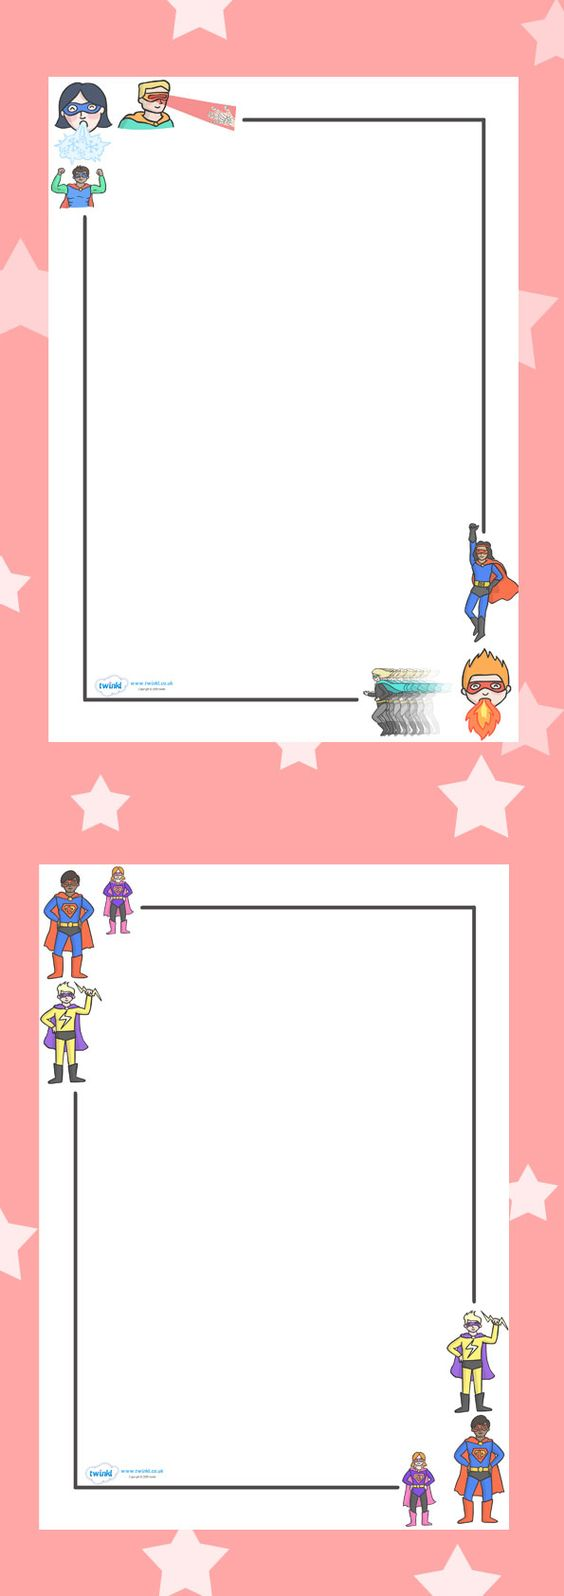 primary resources creative writing ks2 Click here click here click here click here click here if you need high-quality papers done quickly and with zero traces of plagiarism, papercoach is the way to go great rating.